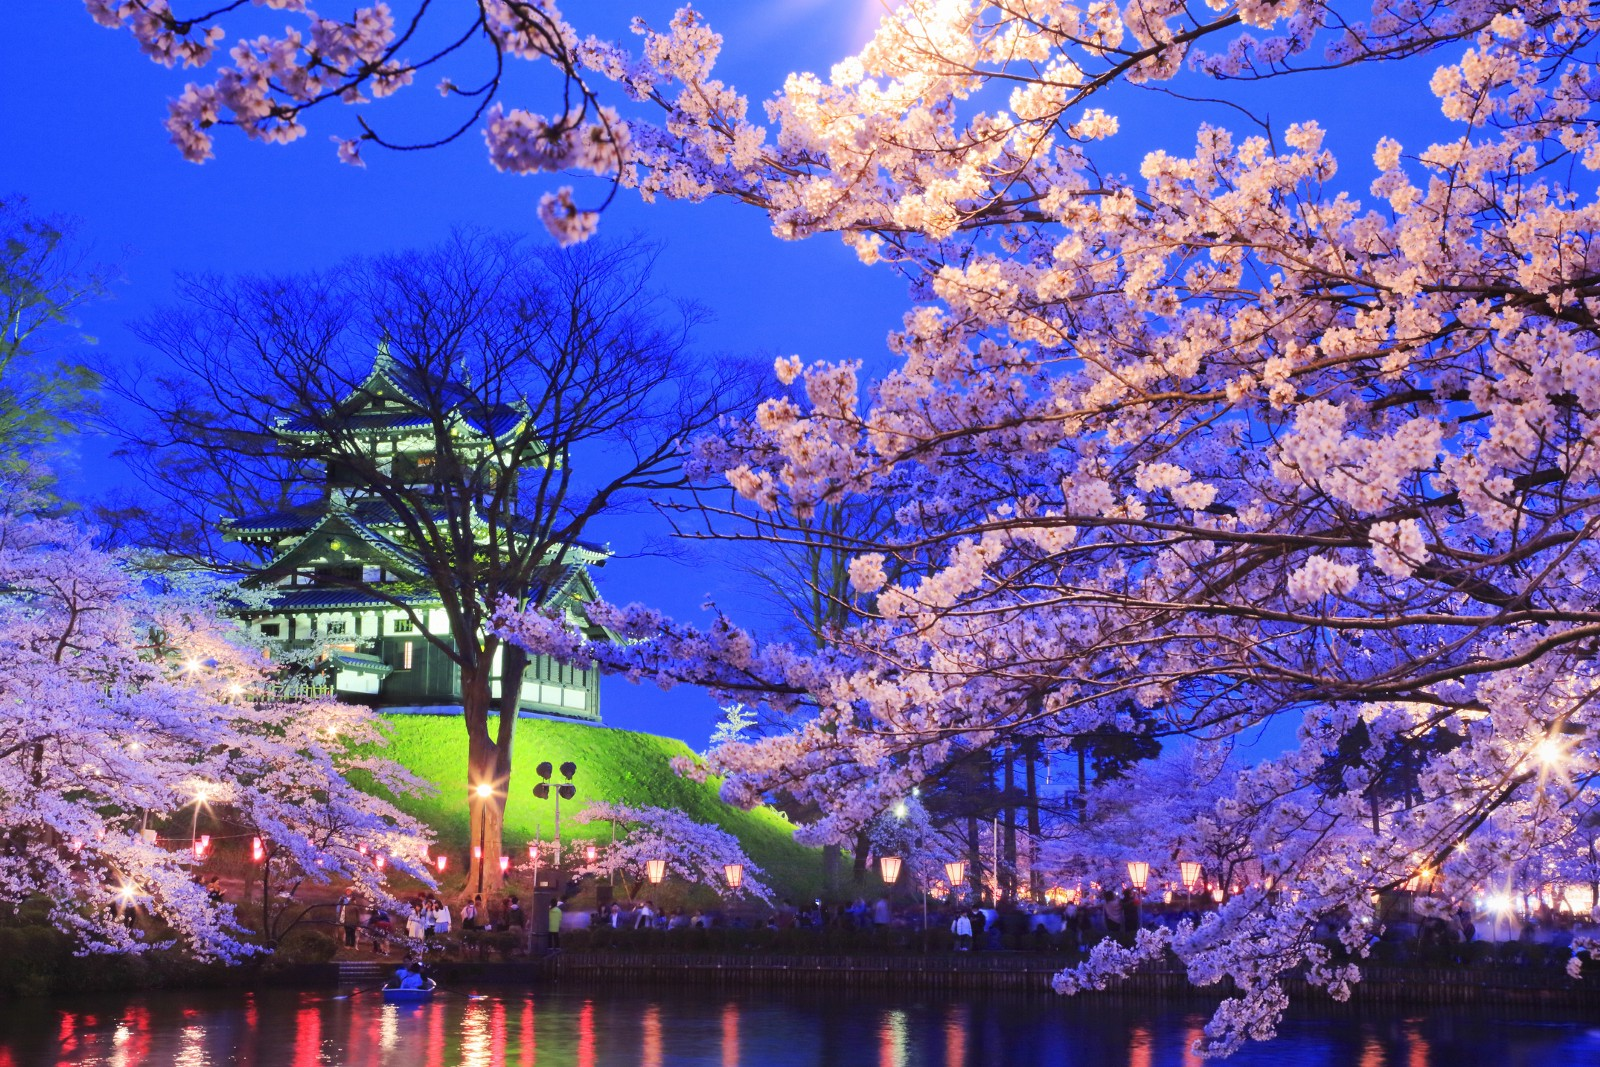 when to see cherry blossom in Japan